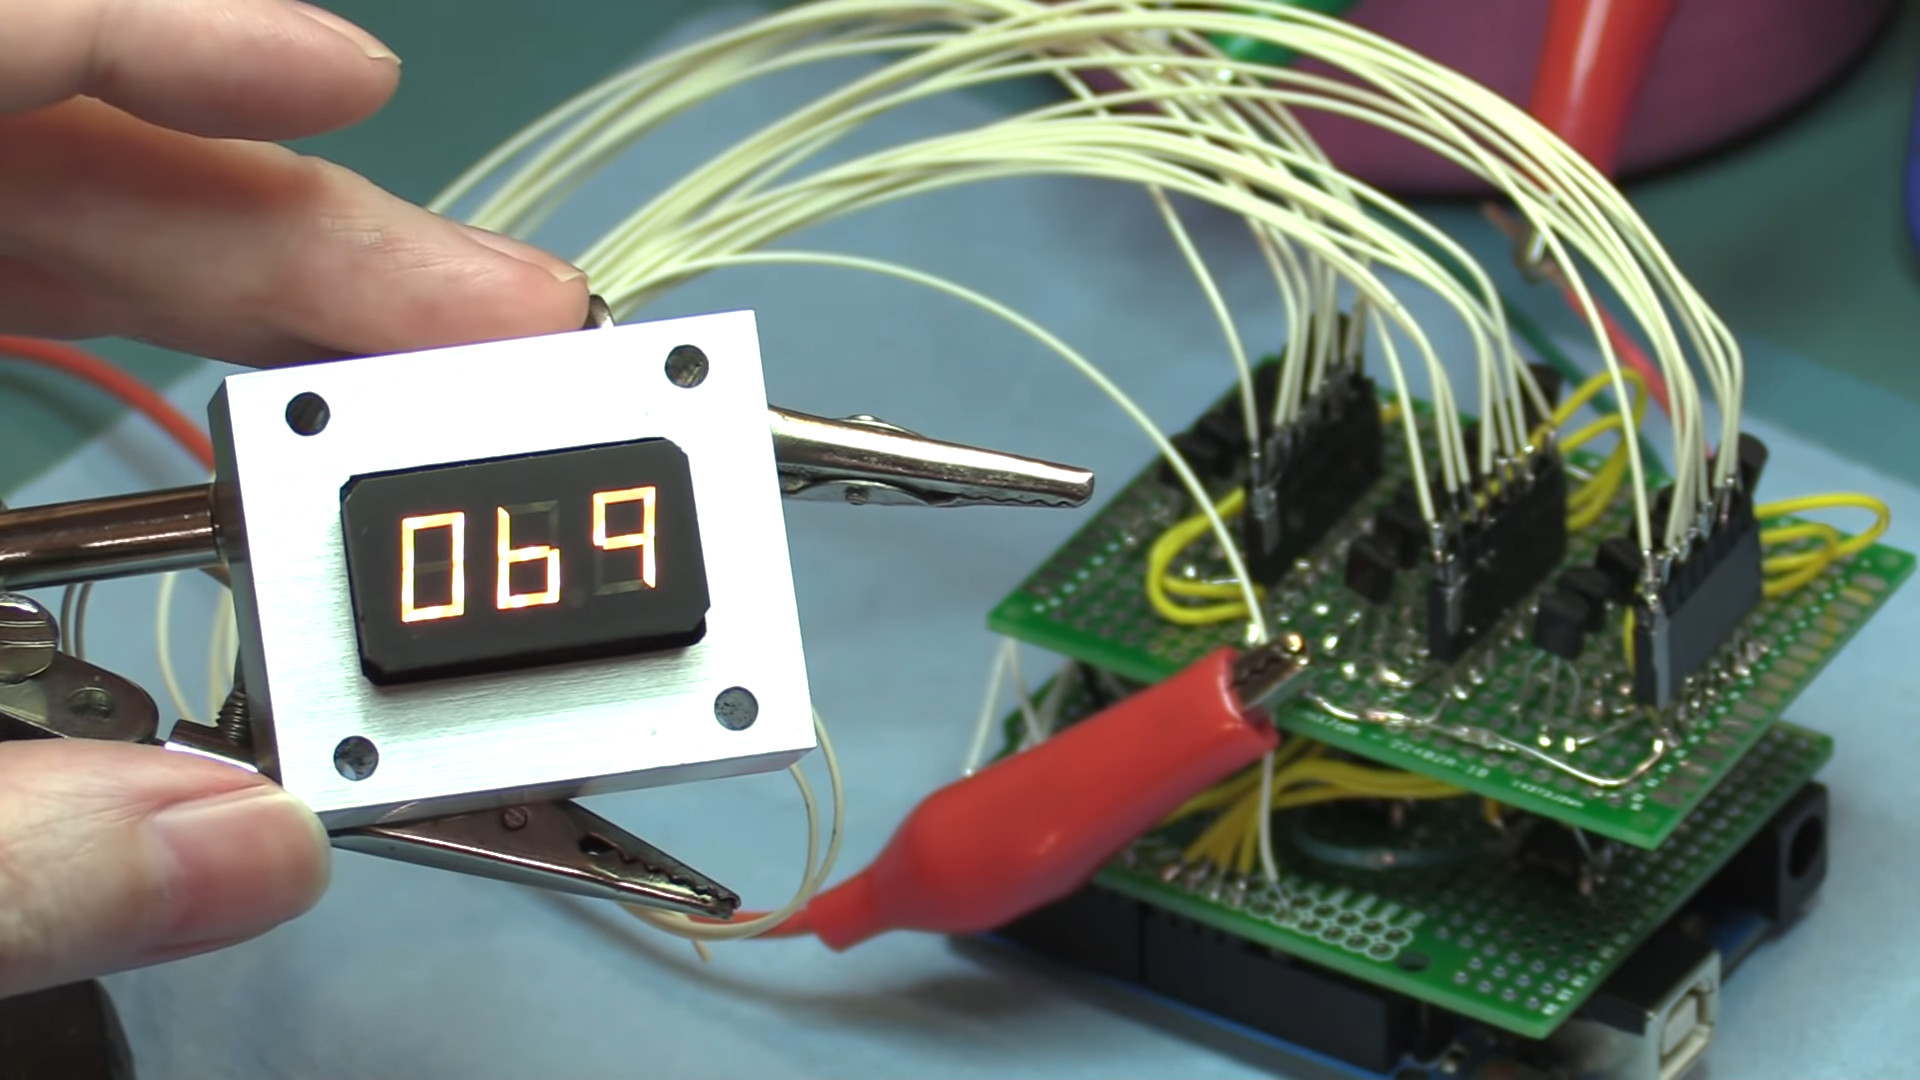 Incandescent 7-Segment Displays Are Awesome